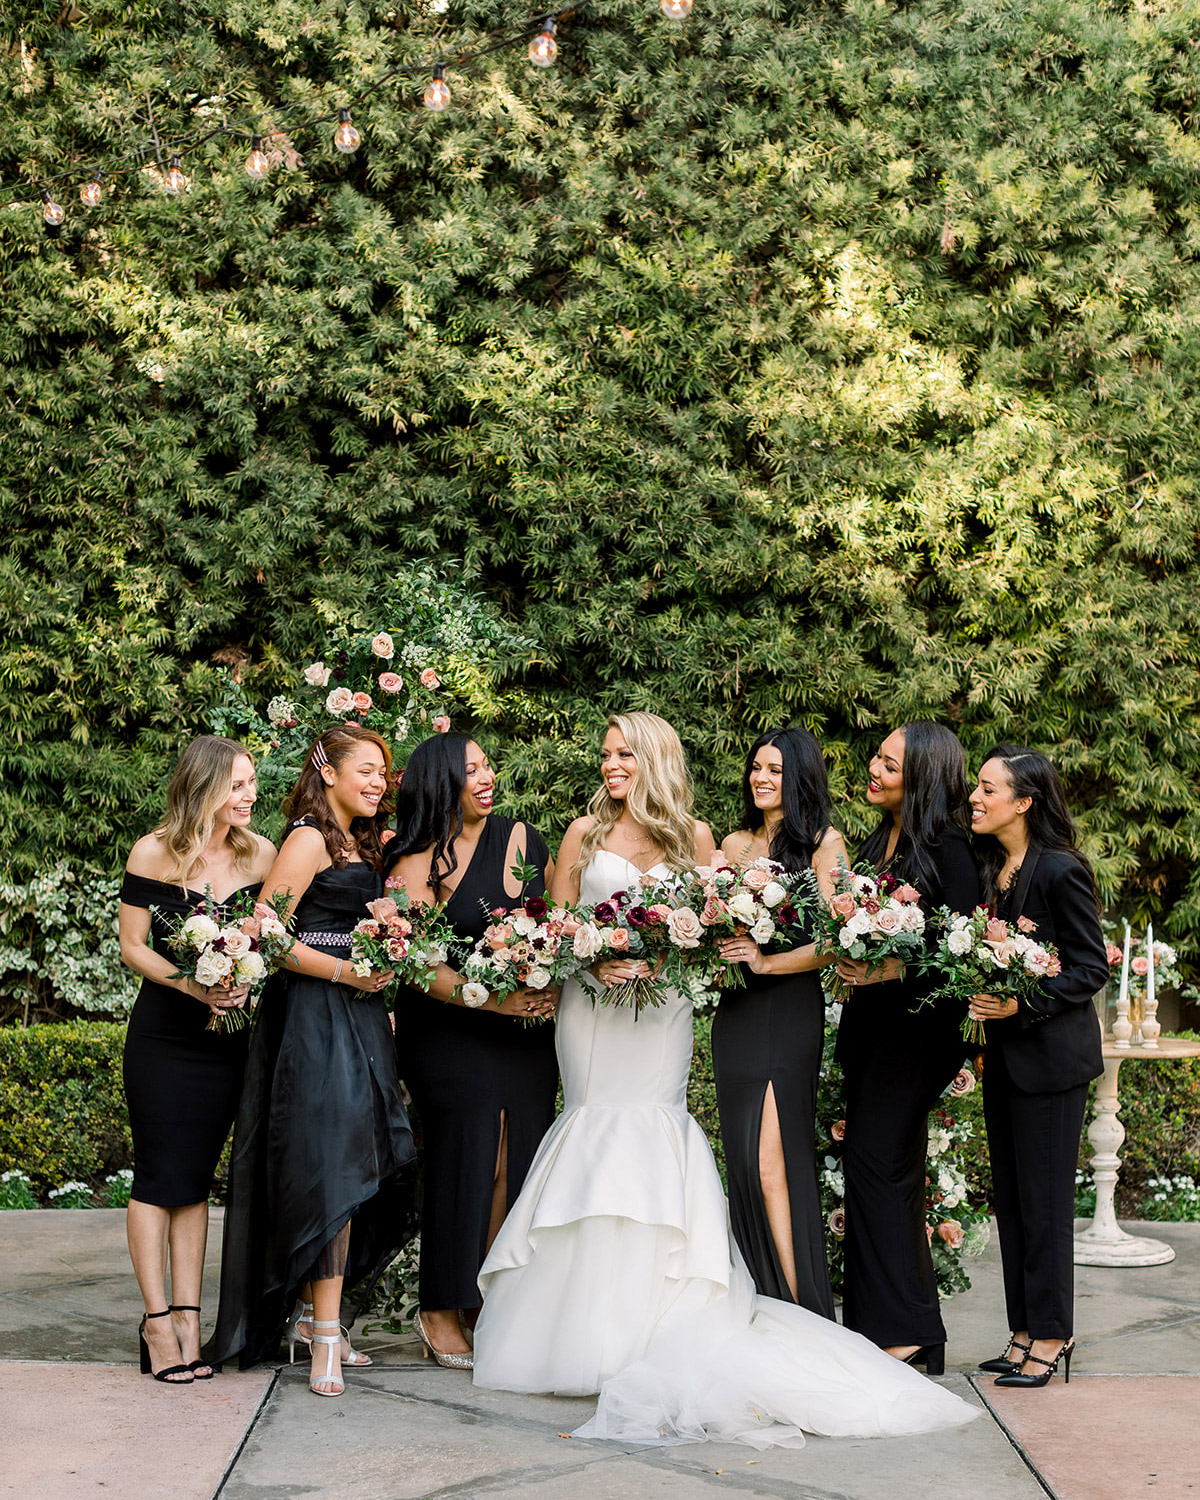 bride and bridesmaids in black against greenery wall